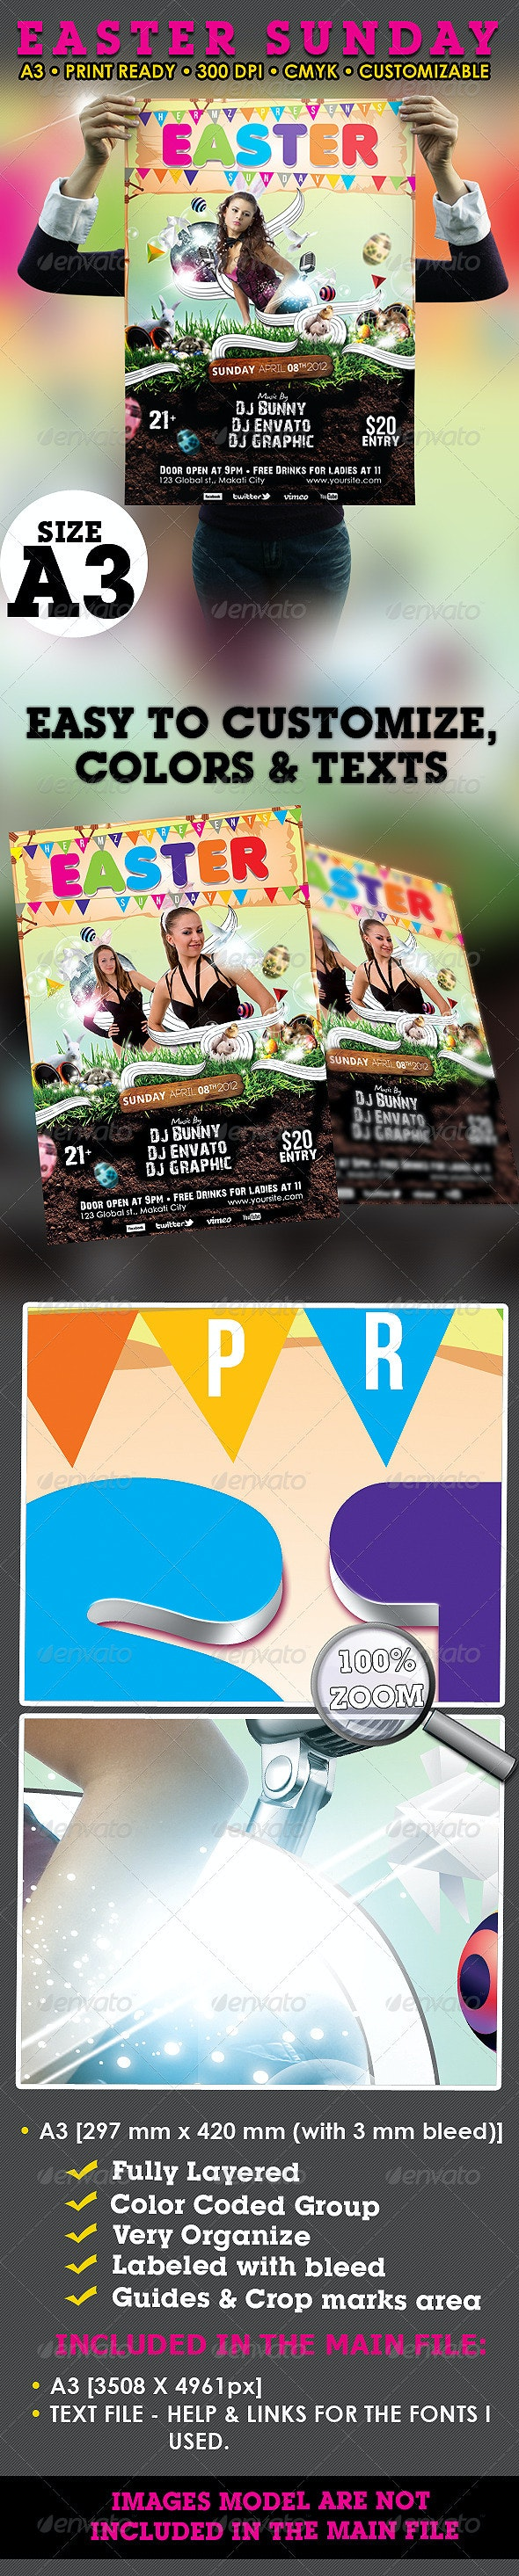 Easter Sunday Poster/Flyer Template - Flyers Print Templates